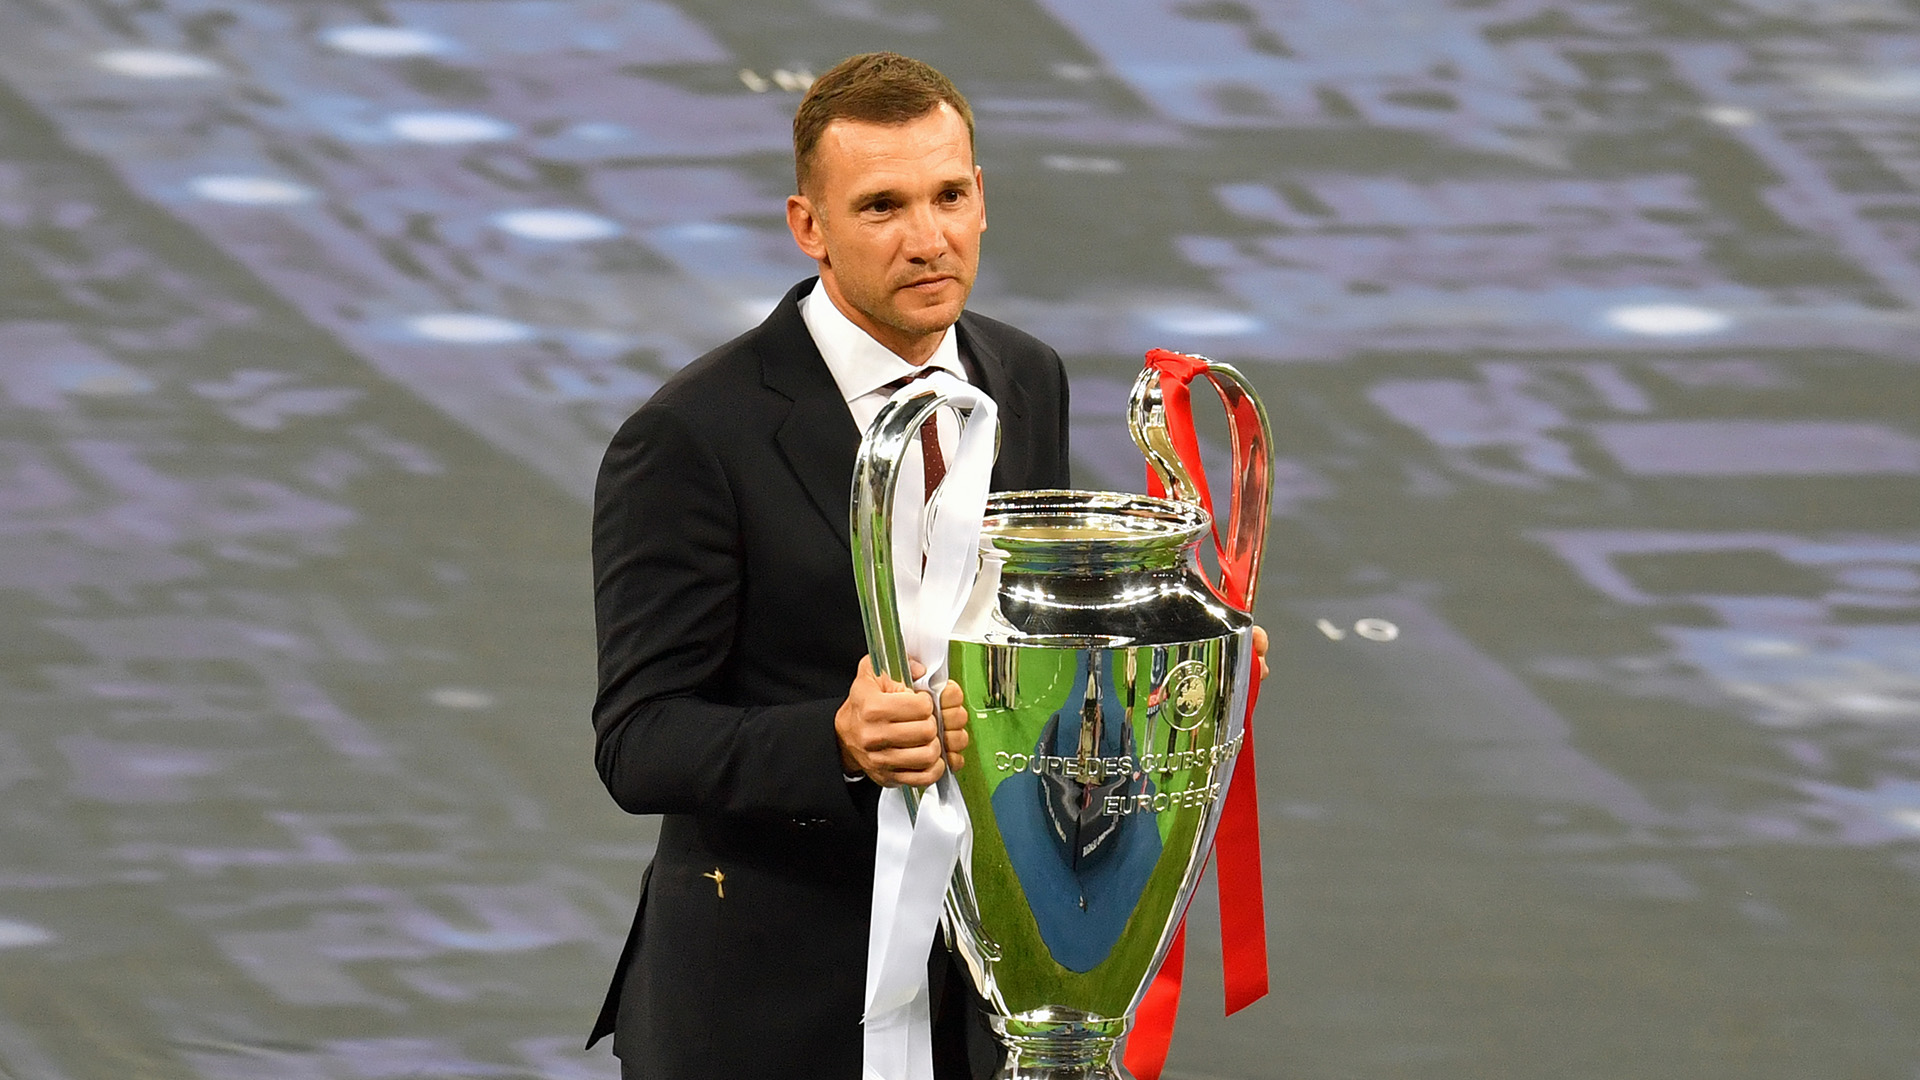 Prematch Andriy Shevchenko trophy Real Madrid Liverpool Champions League final 26052018